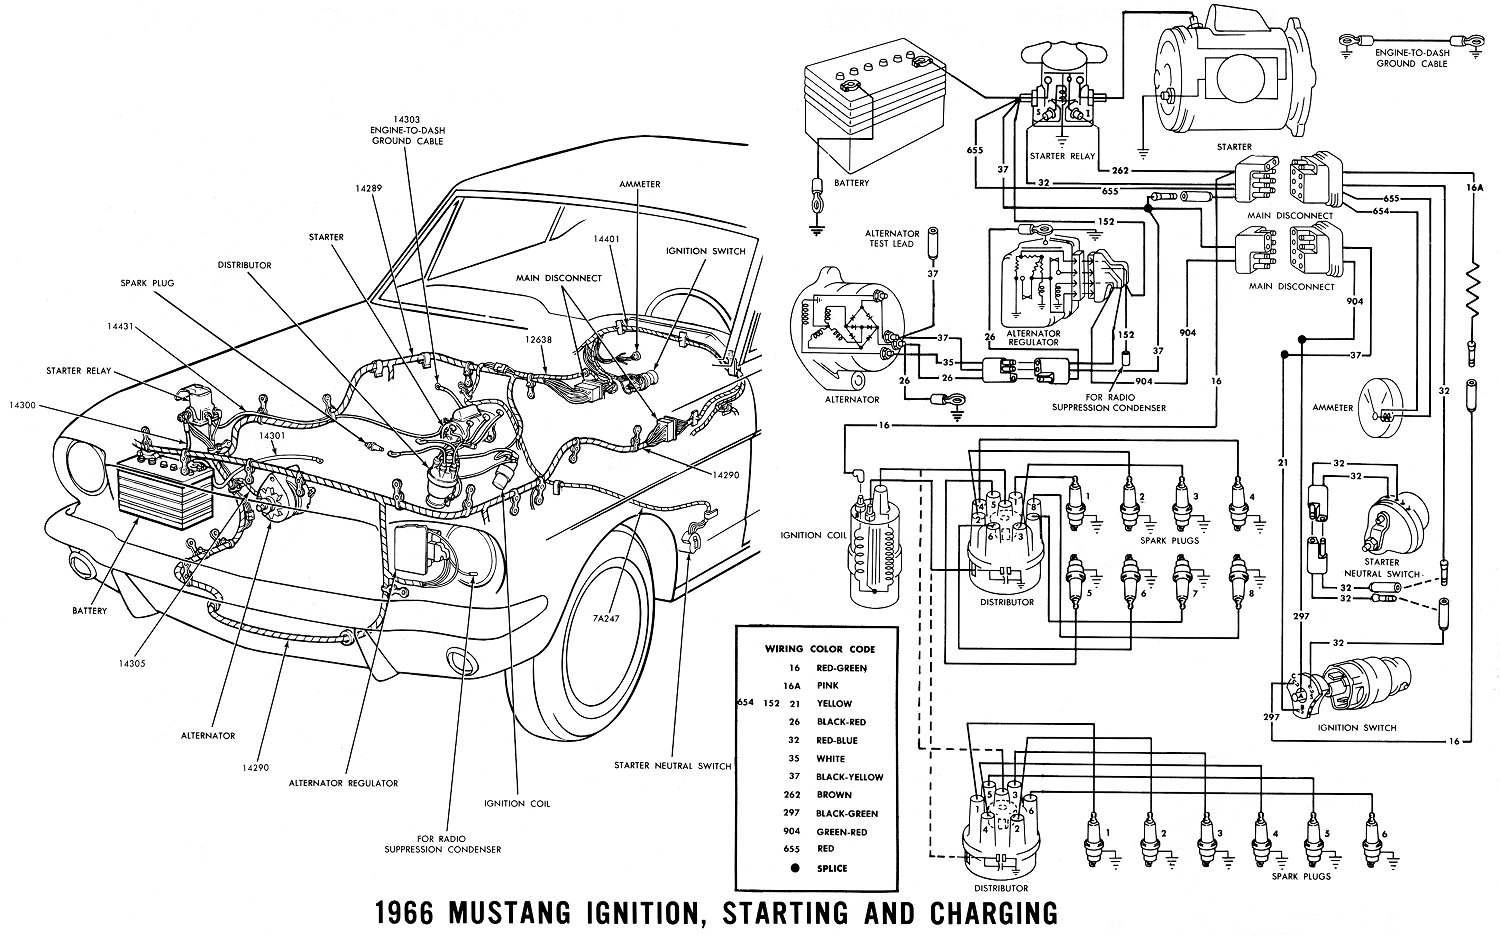 1966 Mustang Wiring Diagrams Average Joe Restoration 5 4 Ford Tractor Instrument Lights Ignition Starting And Charging